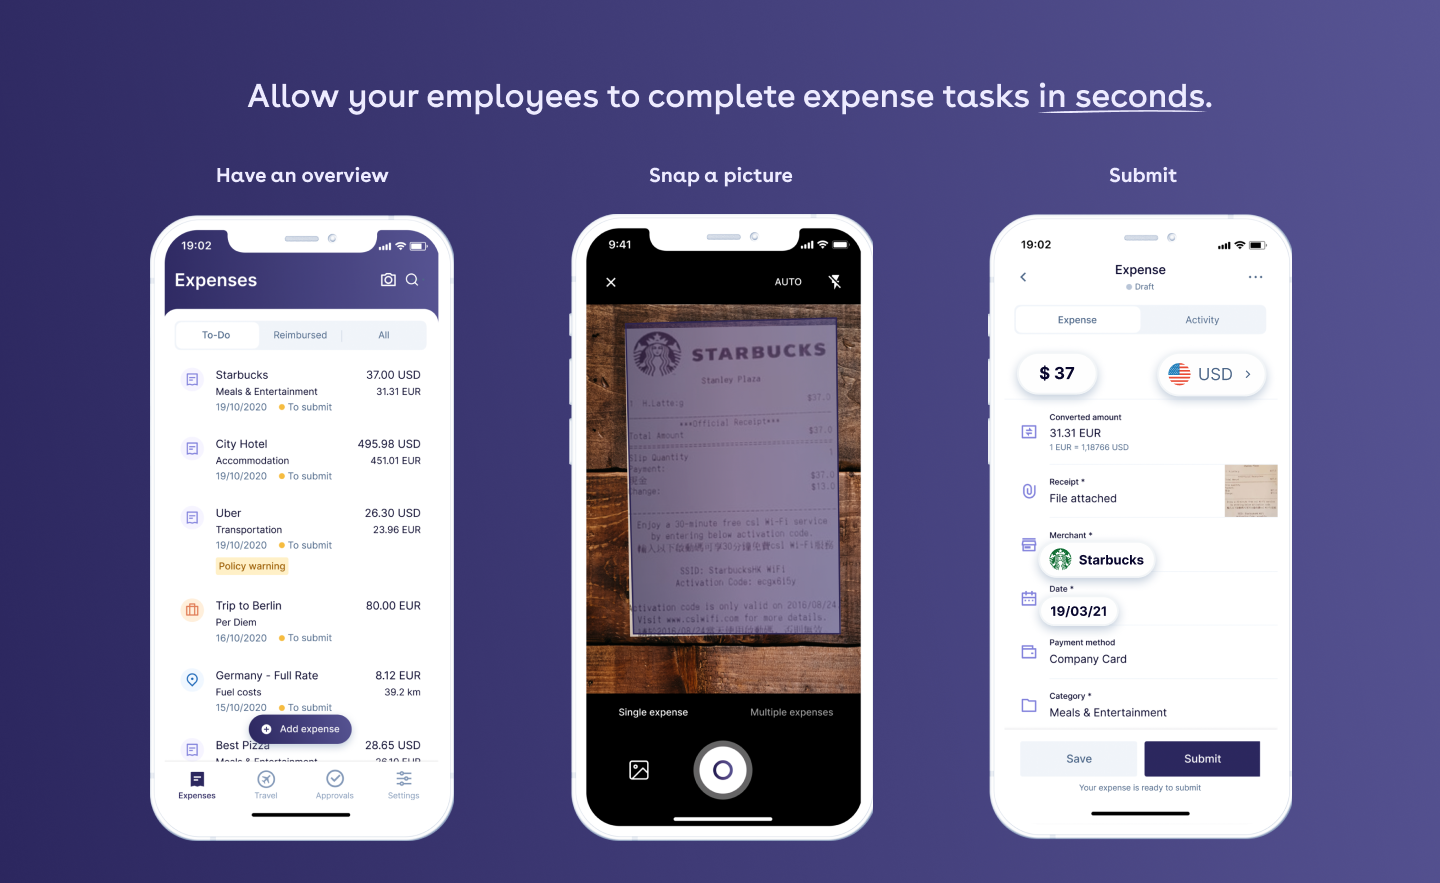 Allow your employees to complete tasks in seconds